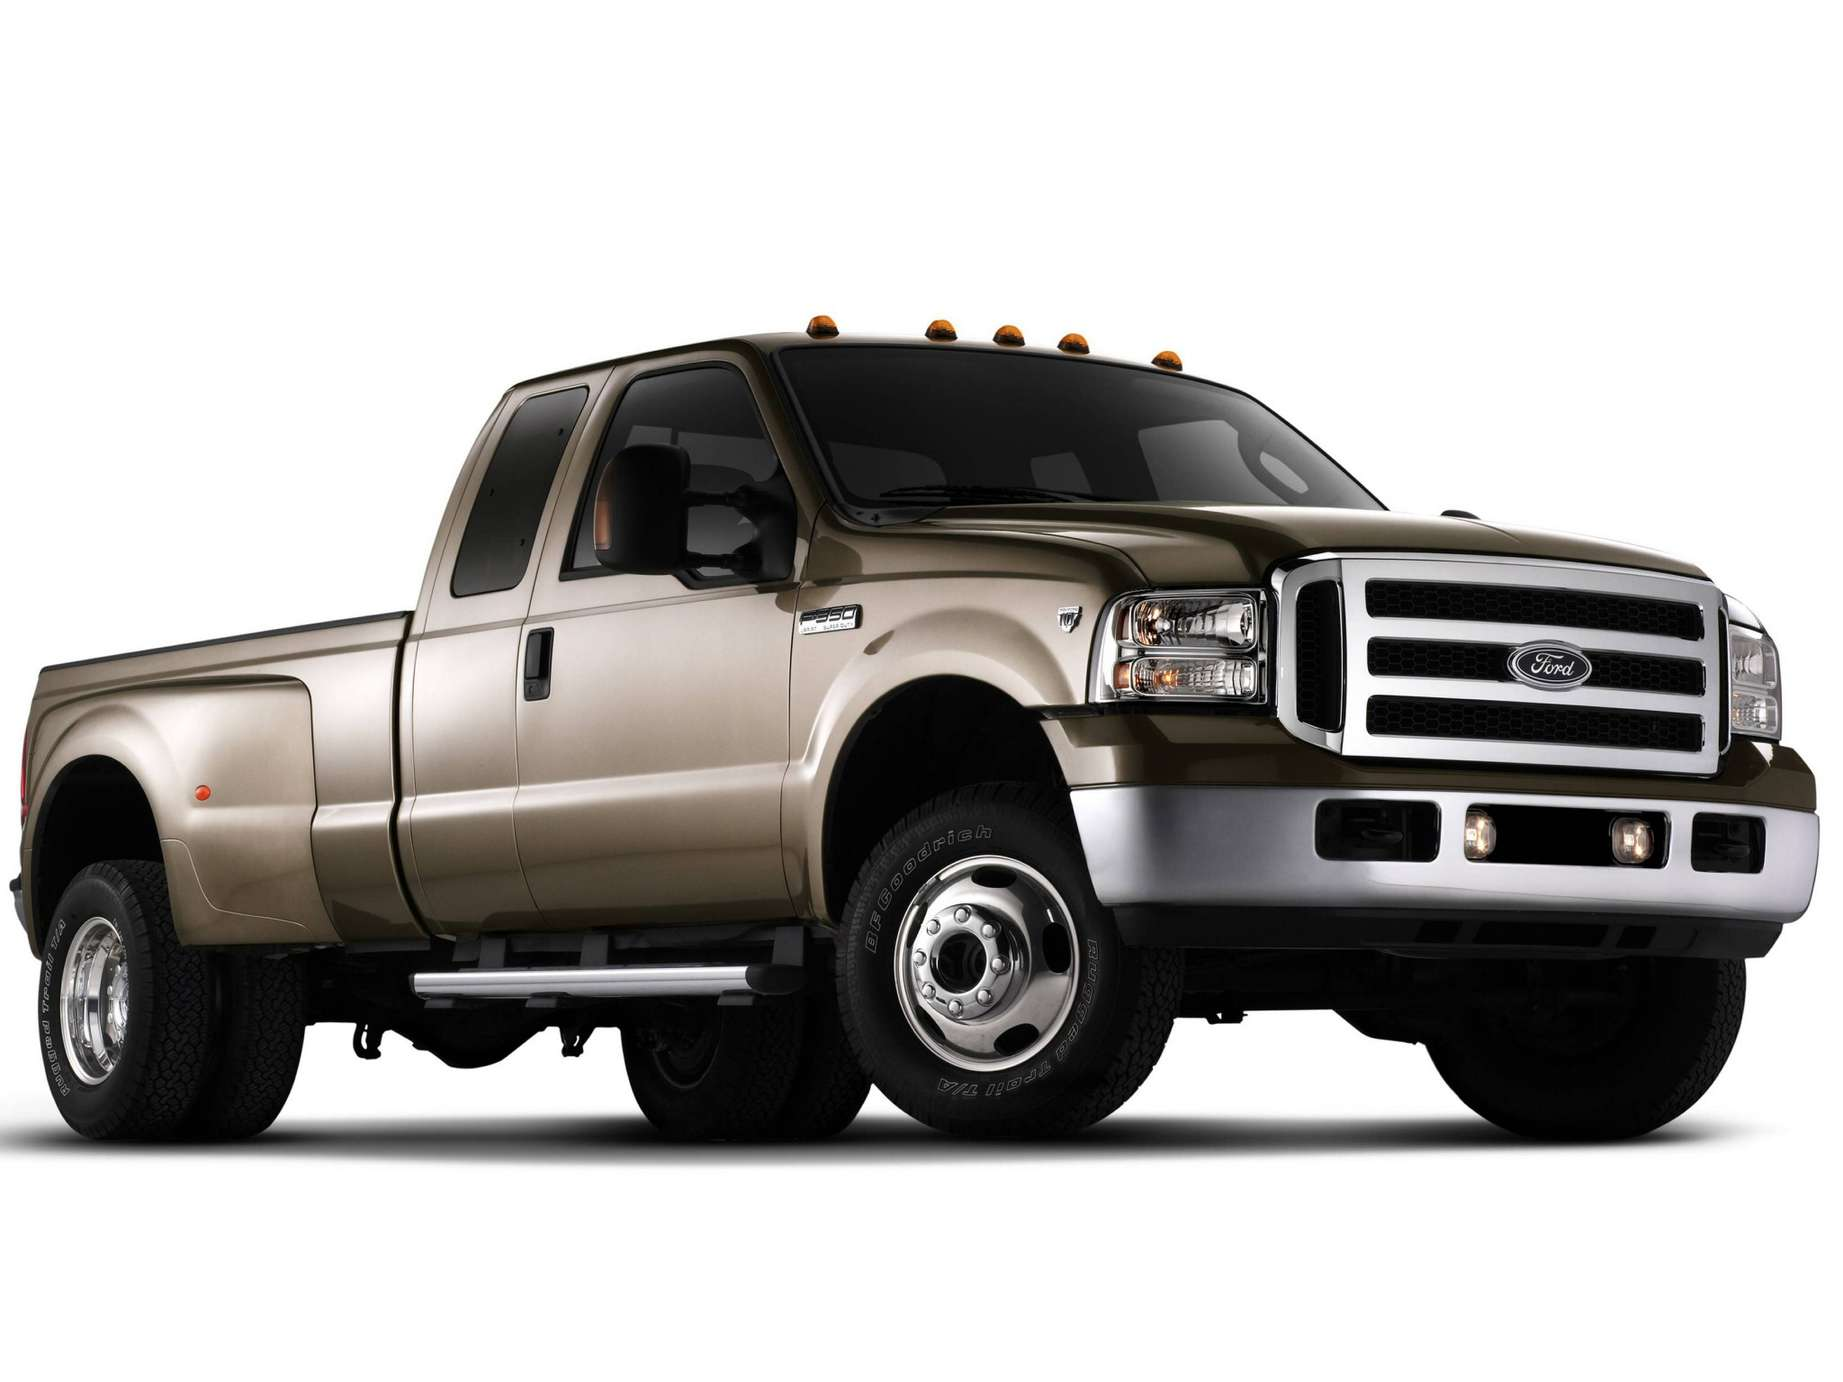 Ford F350 #8972101